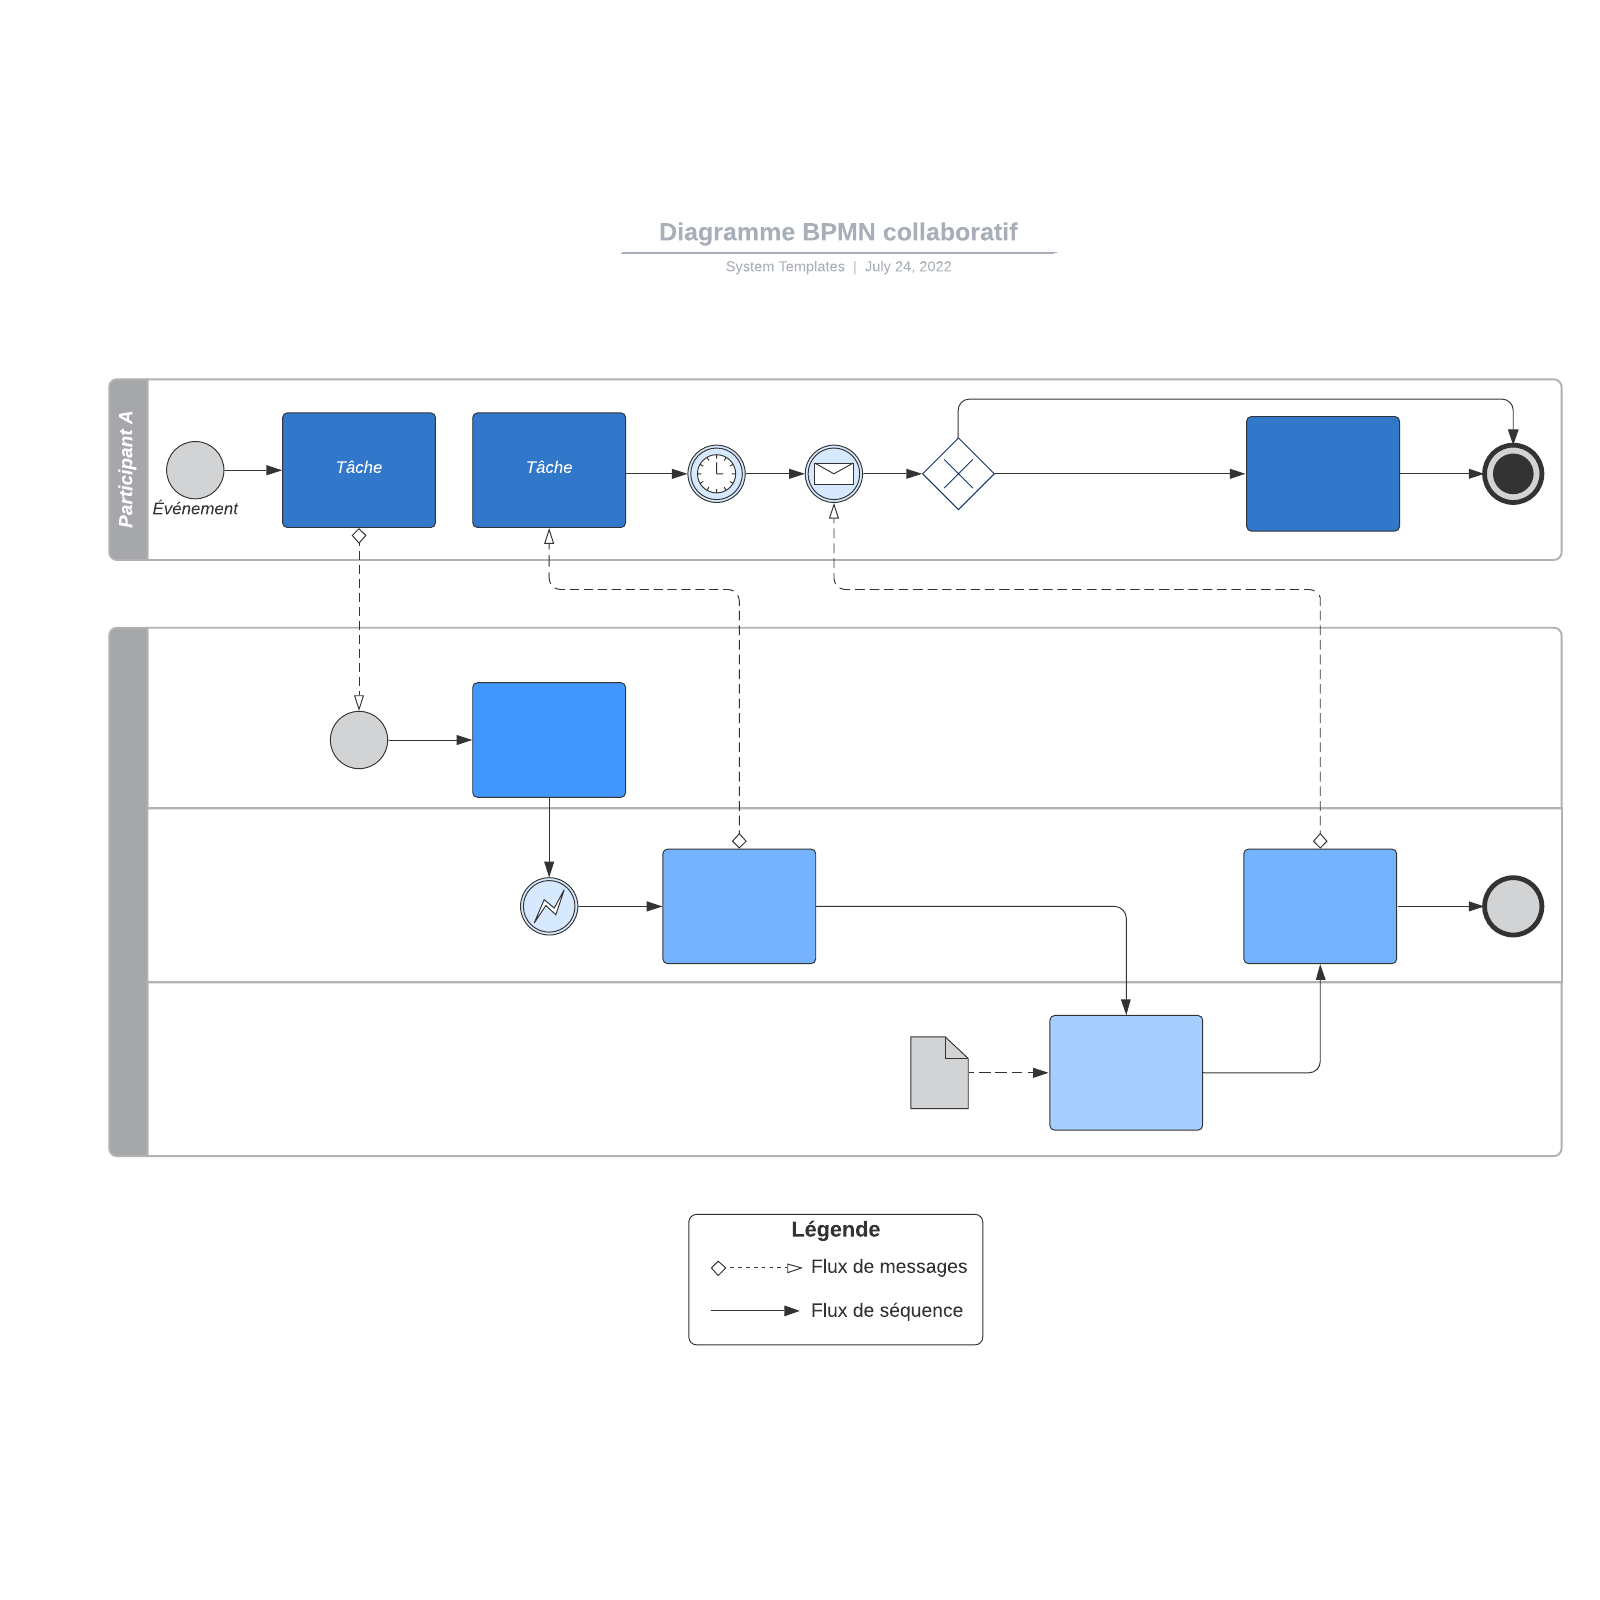 exemple de diagramme BPMN collaboratif vierge